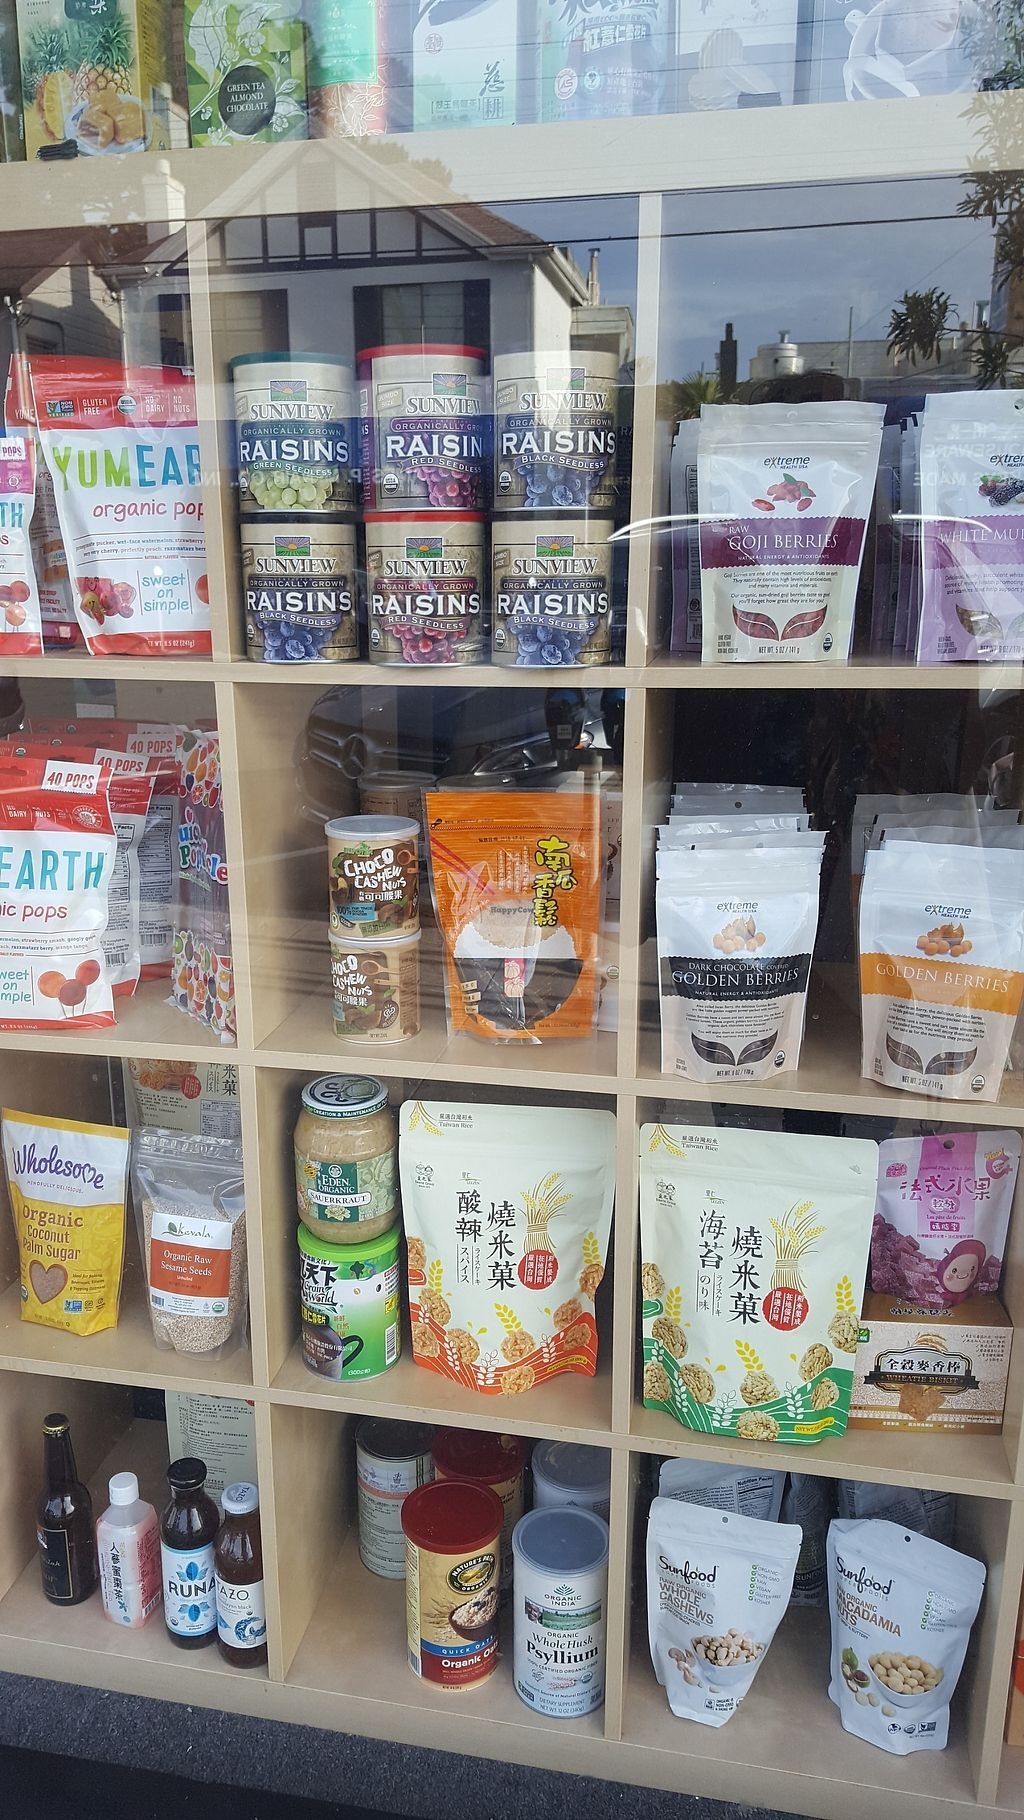 """Photo of Heartland Healthy Food  by <a href=""""/members/profile/VeganScientist"""">VeganScientist</a> <br/>Snacks, dried fruit, nuts, candies <br/> April 11, 2018  - <a href='/contact/abuse/image/117308/384171'>Report</a>"""